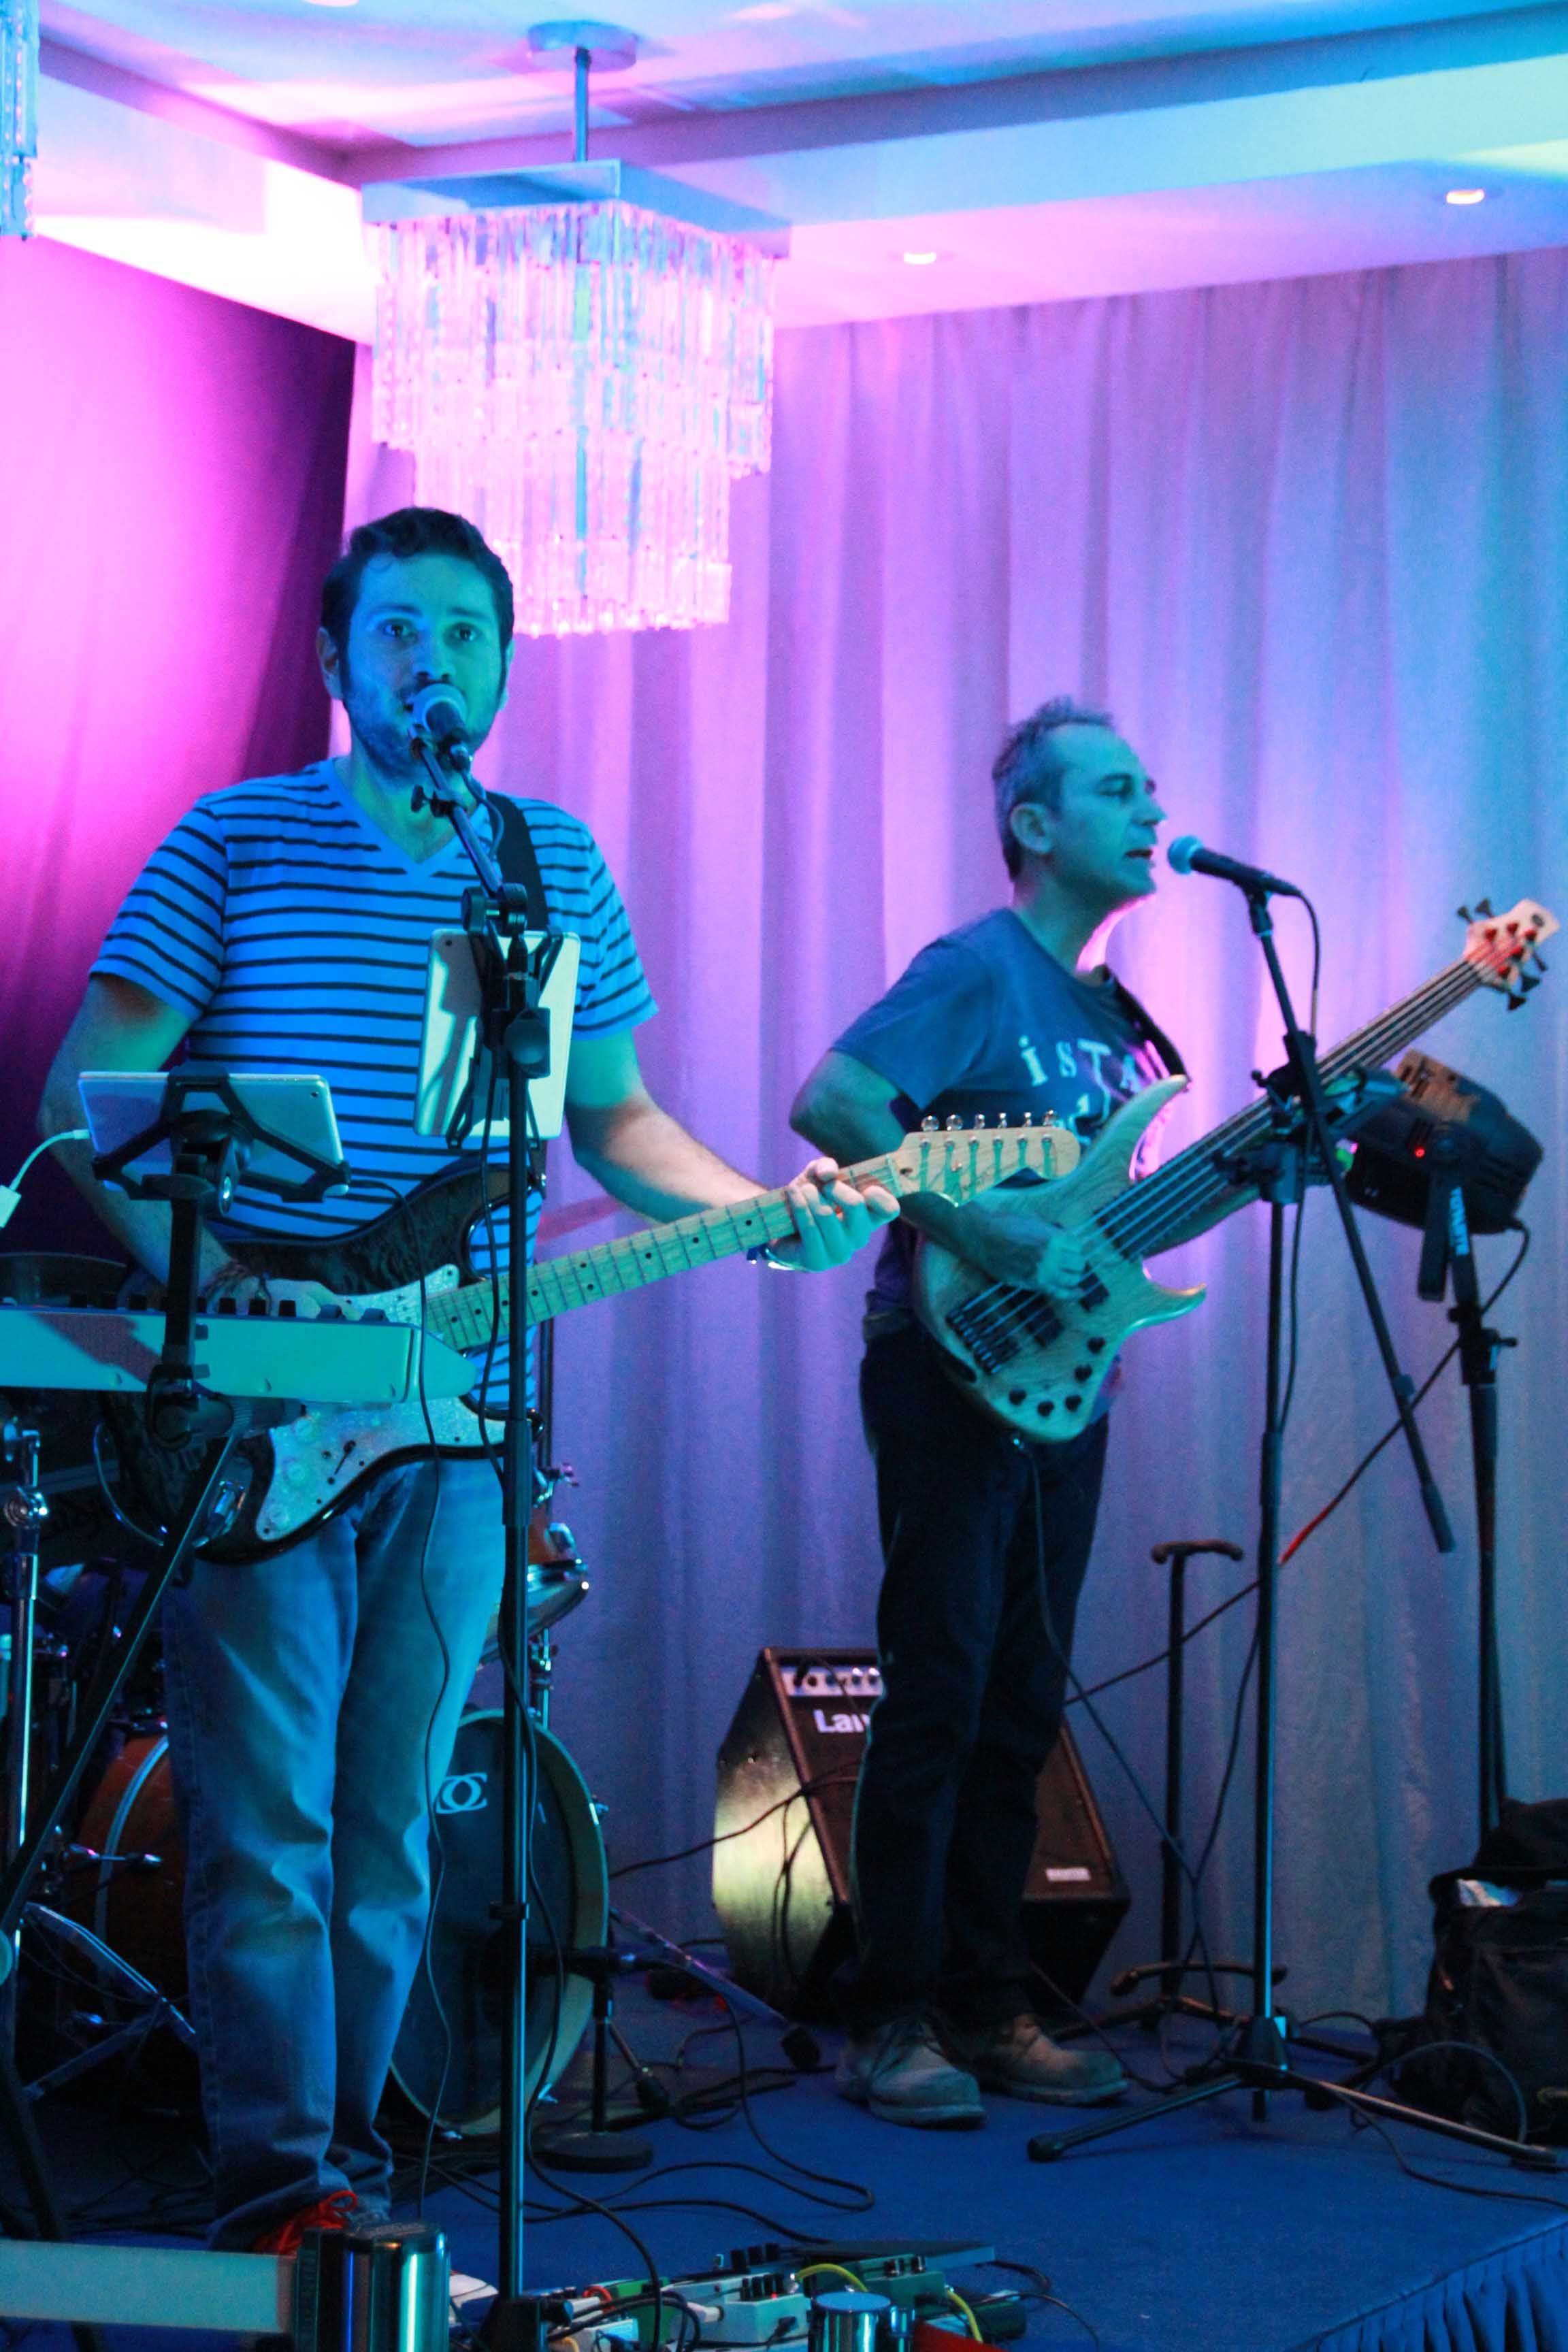 We enjoyed some awesome Rock & Blues Classics, live by Visne Band in our Healeys Bar & Terrace!